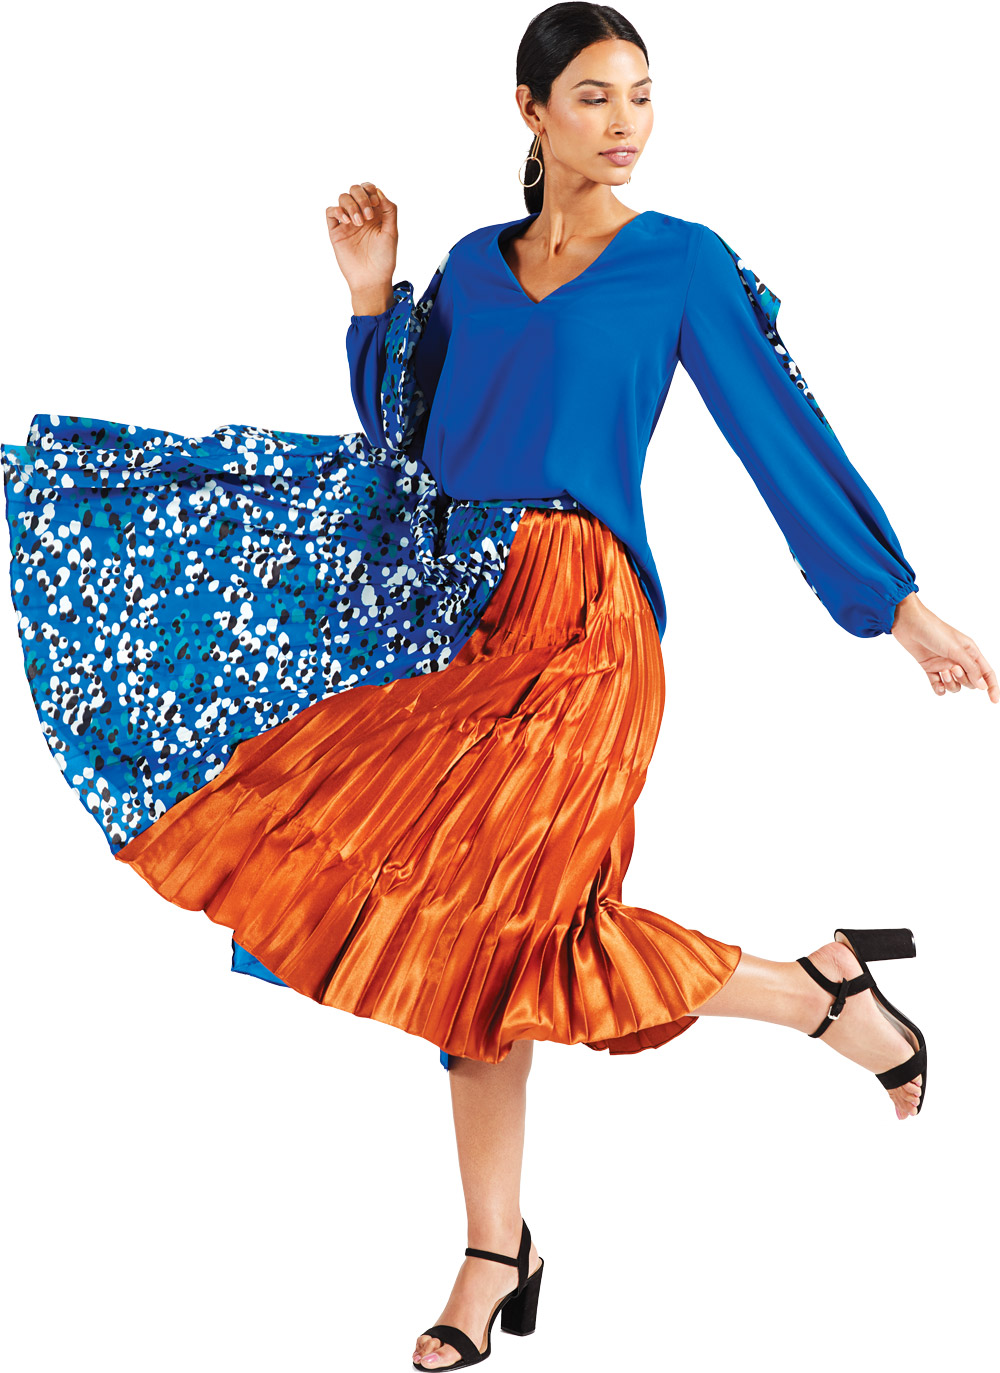 A model wearing a flowing blue and orange skirt and blue blouse